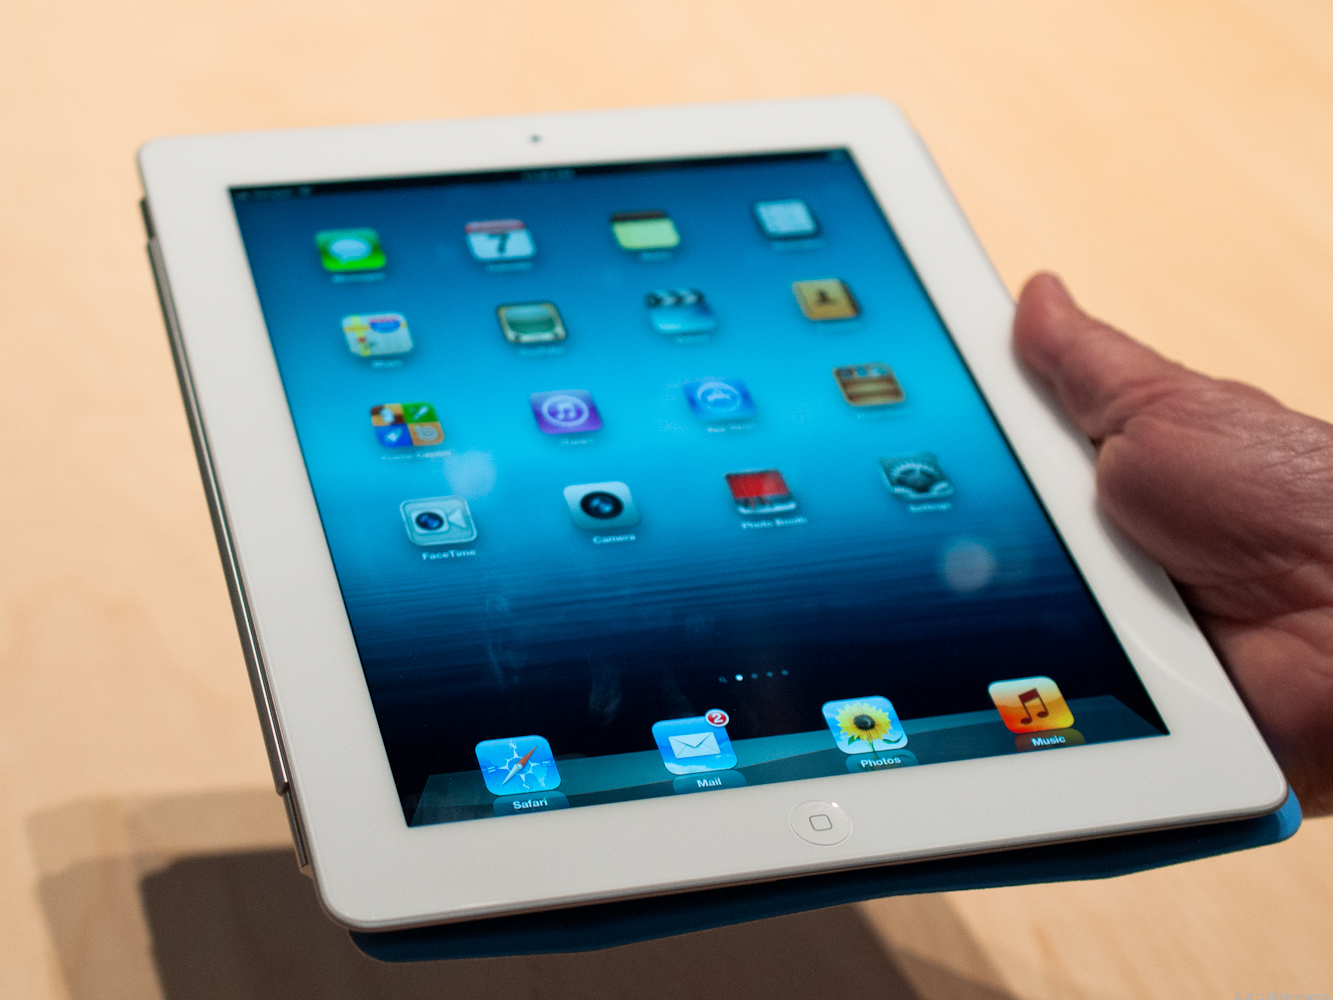 Apple iPad (March 2012, 16GB, AT&T 4G LTE, white)